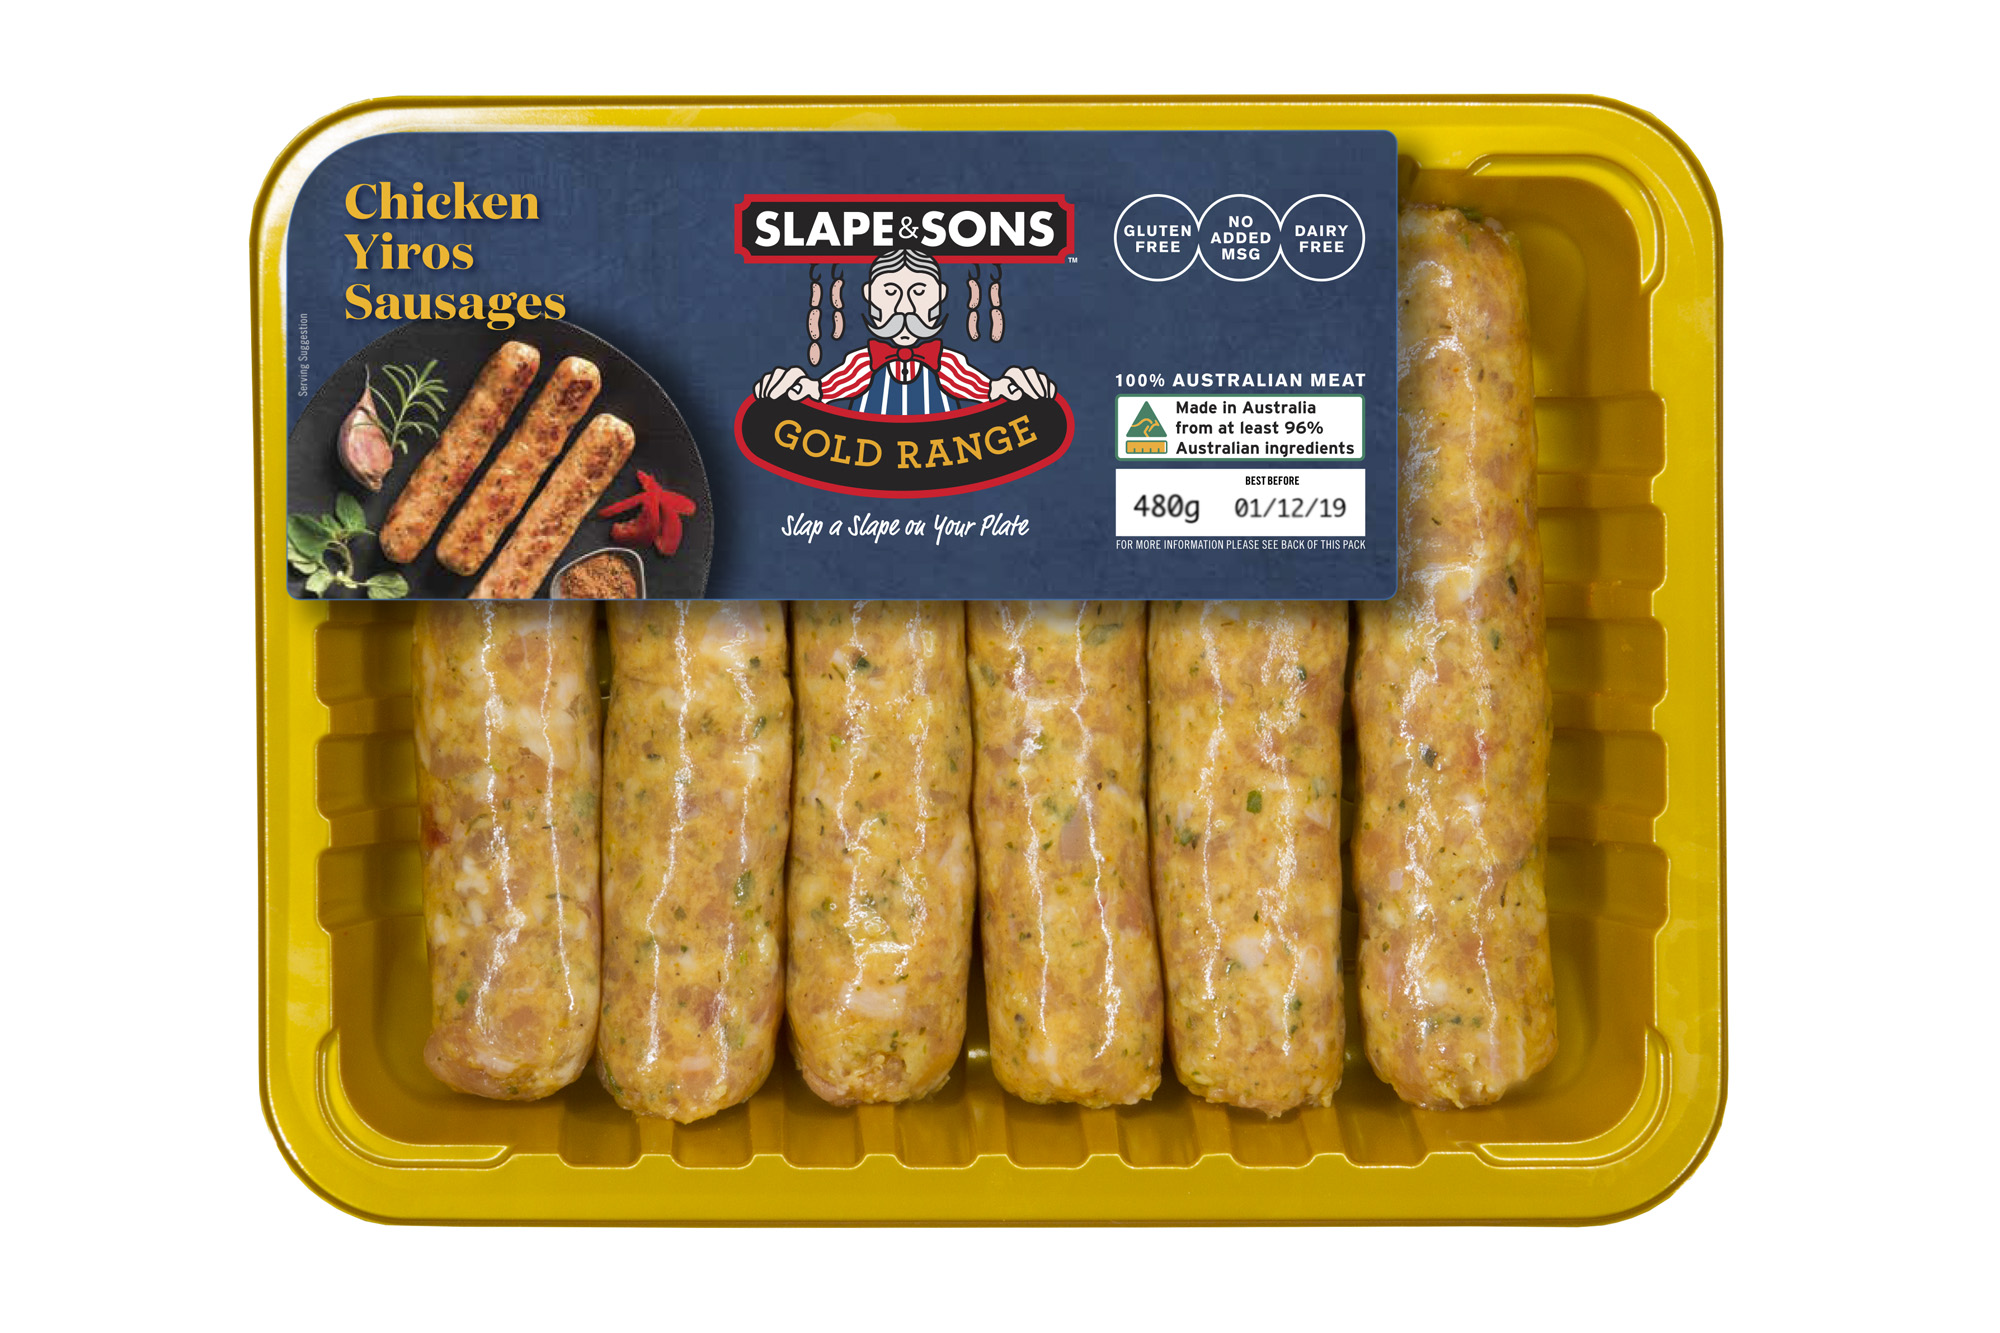 Slape and Sons - Chicken Yiros Sausages